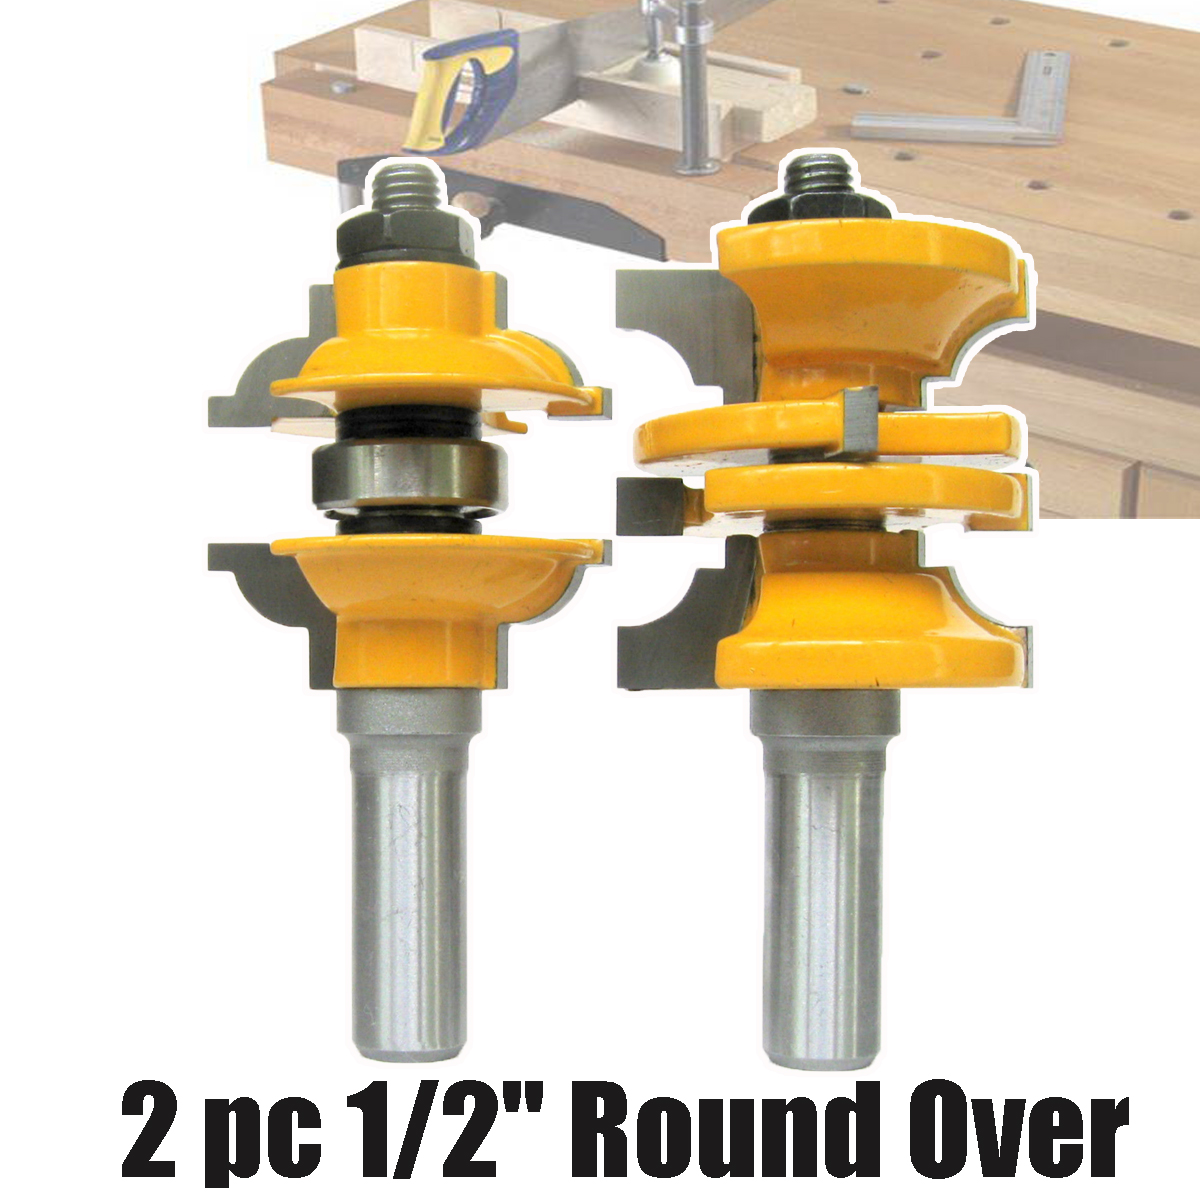 1Pc Lock Miter Router Bit 1/2 Inch Shank Woodworking Tenon Milling Cutter Tool Drilling Milling For Wood Carbide Alloy 1pc hhs cylindrical milling cutter d80 32 h100 milling tool inner hole 32mm